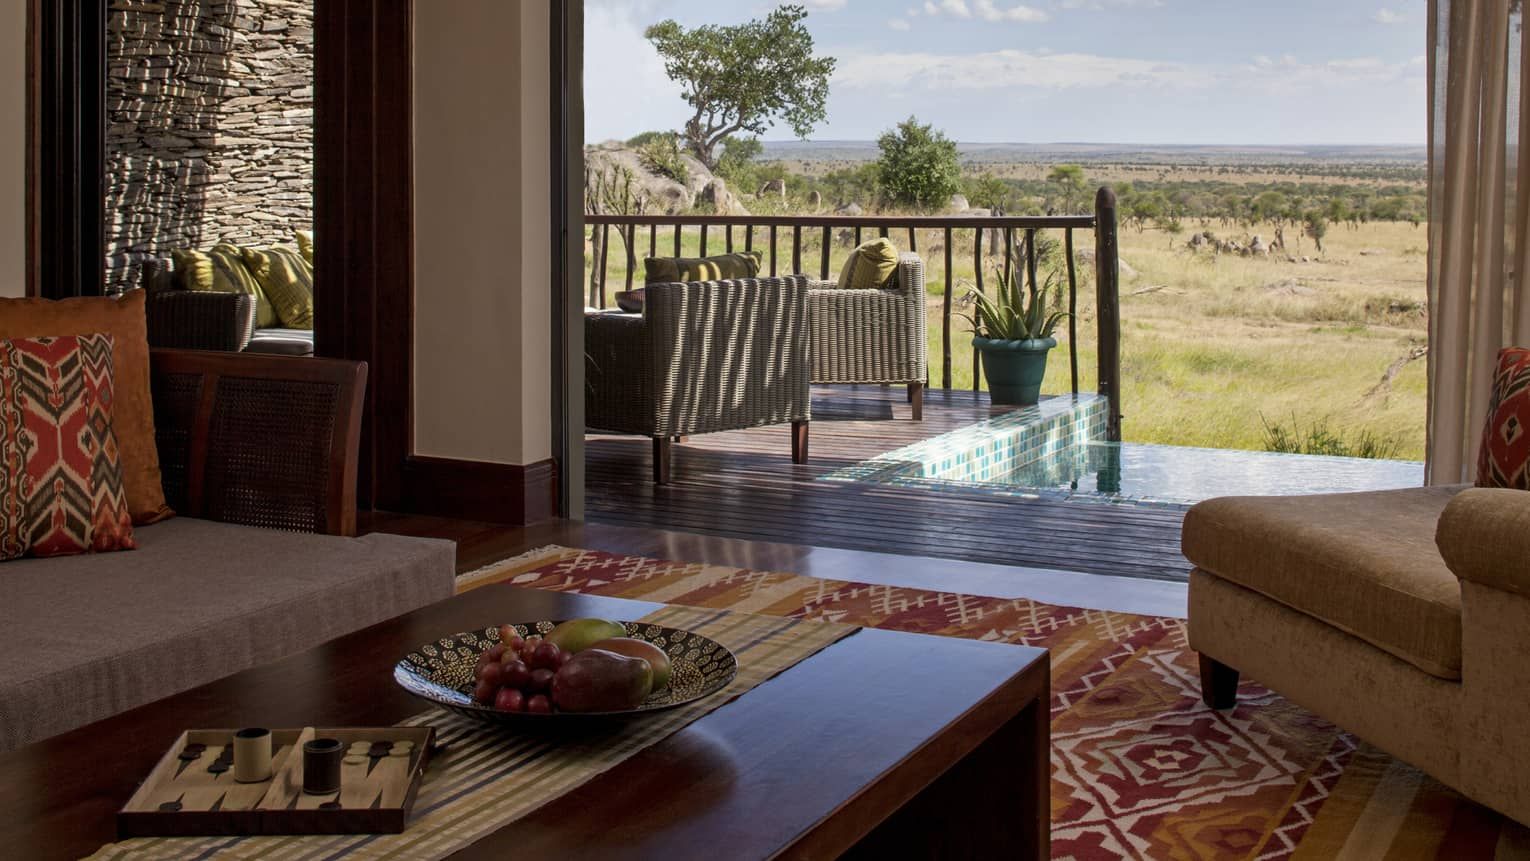 Terrace Suite coffee tables, sofas with colourful print accent pillows, open patio wall